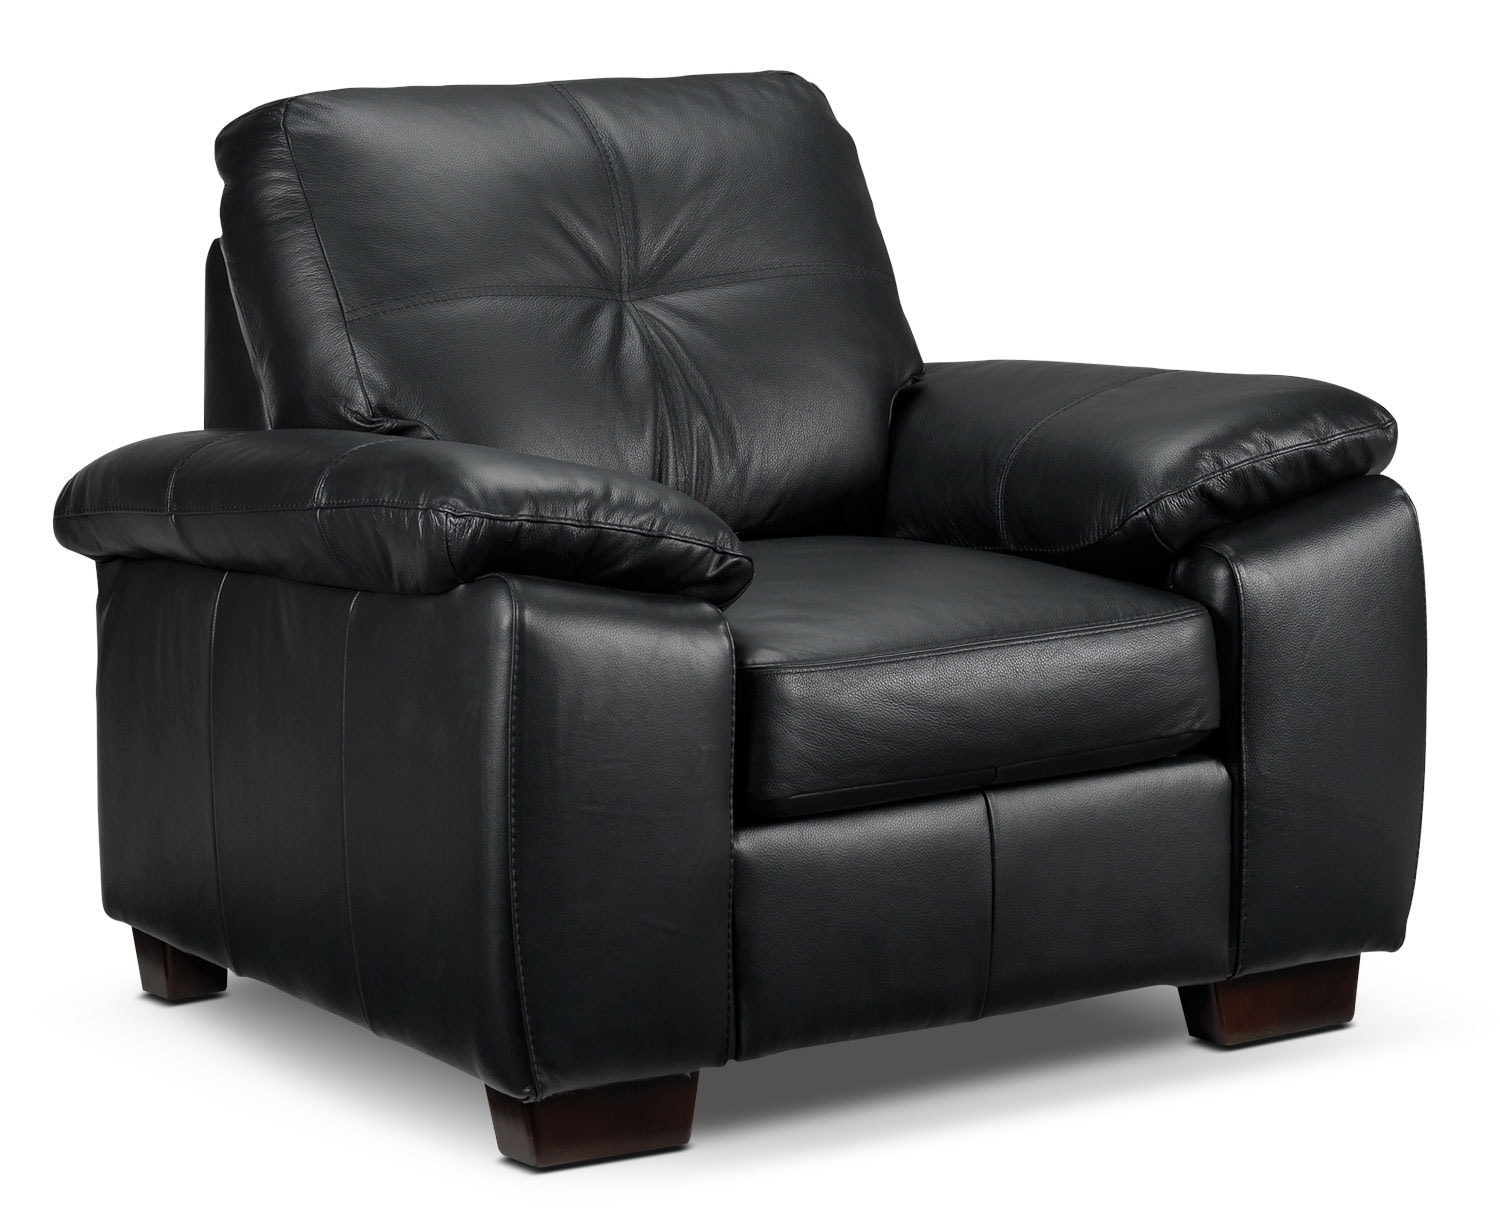 Living Room Furniture - Naples Chair - Black